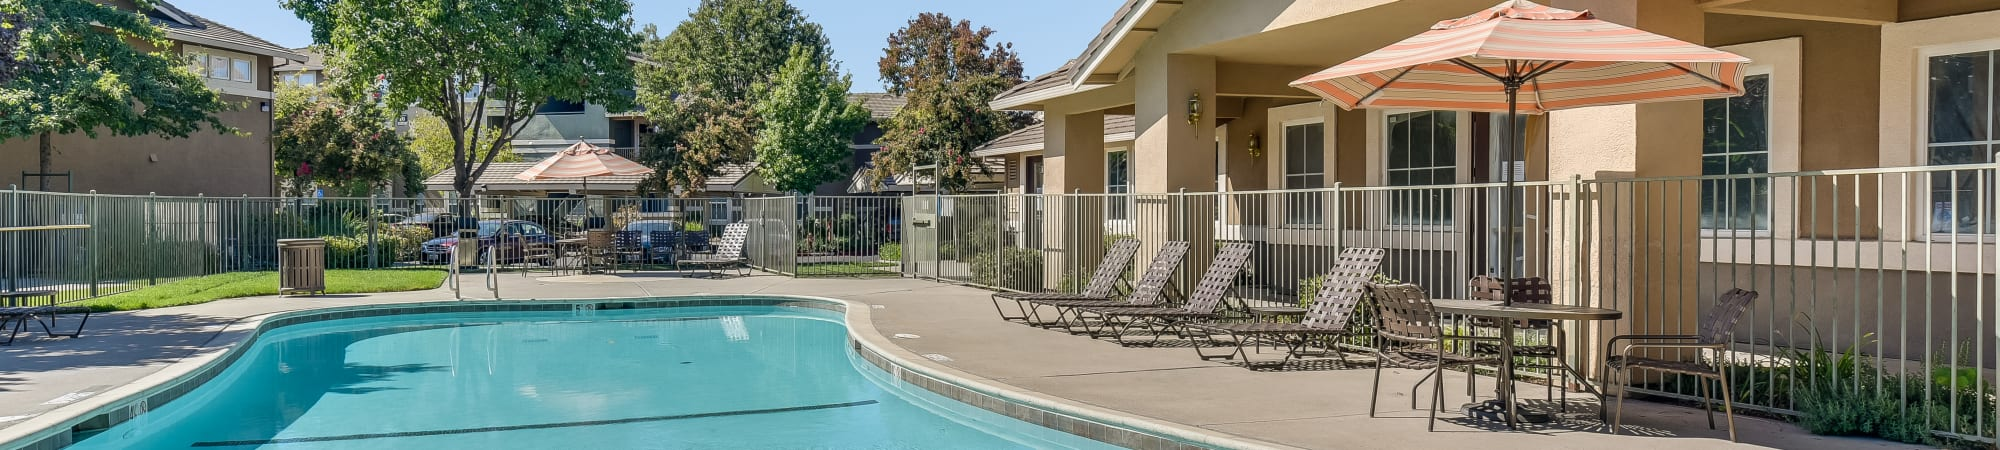 Schedule a Tour at Natomas Park Apartments to enjoy our outdoor pool, in Sacramento, California